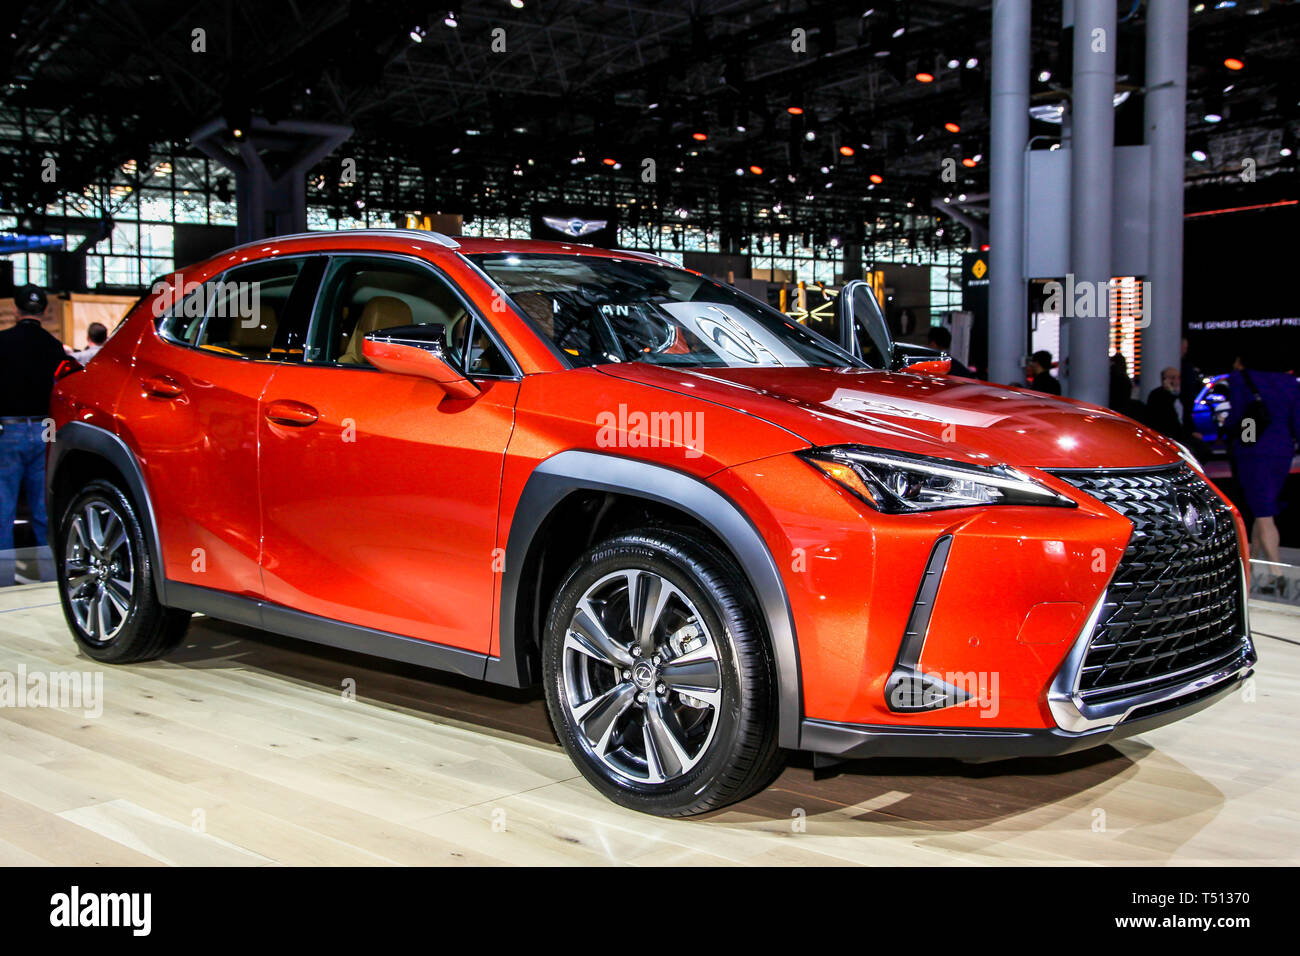 Lexus UX 200 shown at the New York International Auto Show 2019, at the Jacob Javits Center. This was Press Preview Day One of NYIAS - Stock Image